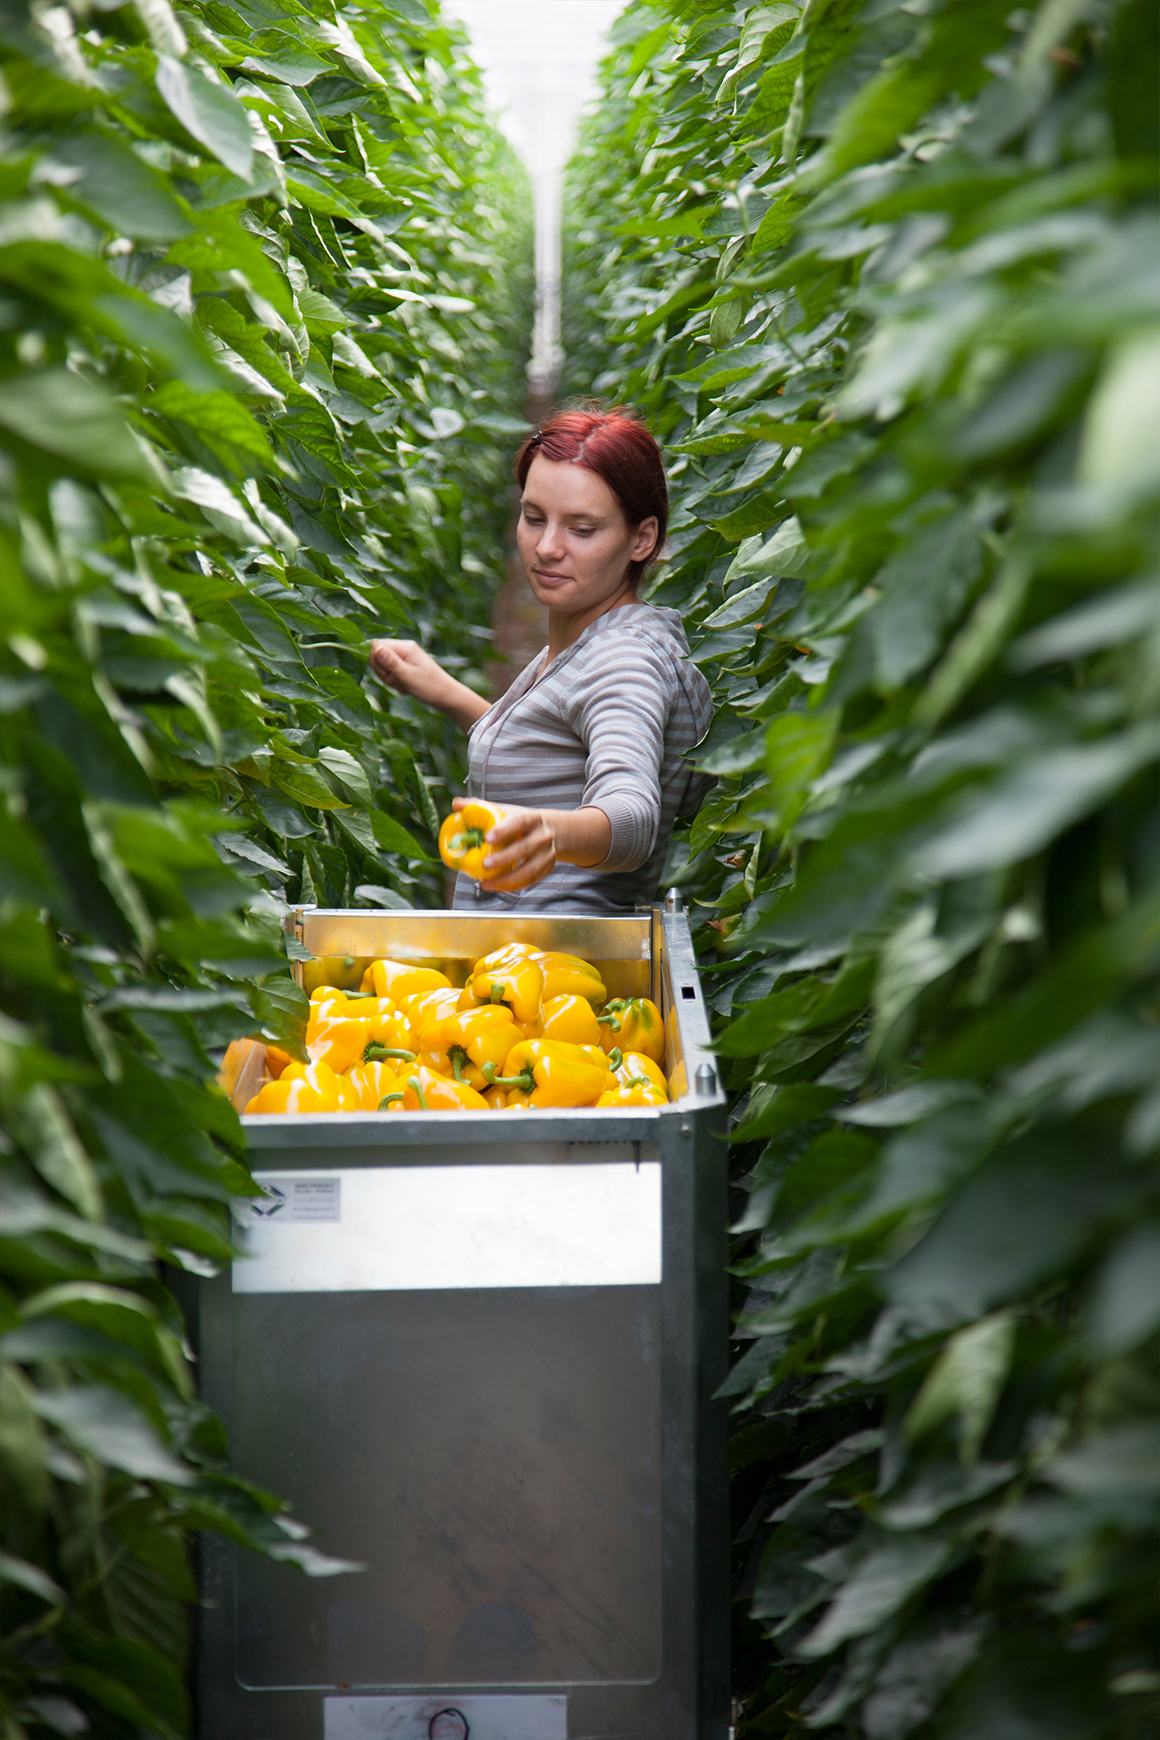 A female employee handpicking yellow peppers in a row of tall green pepper plants.